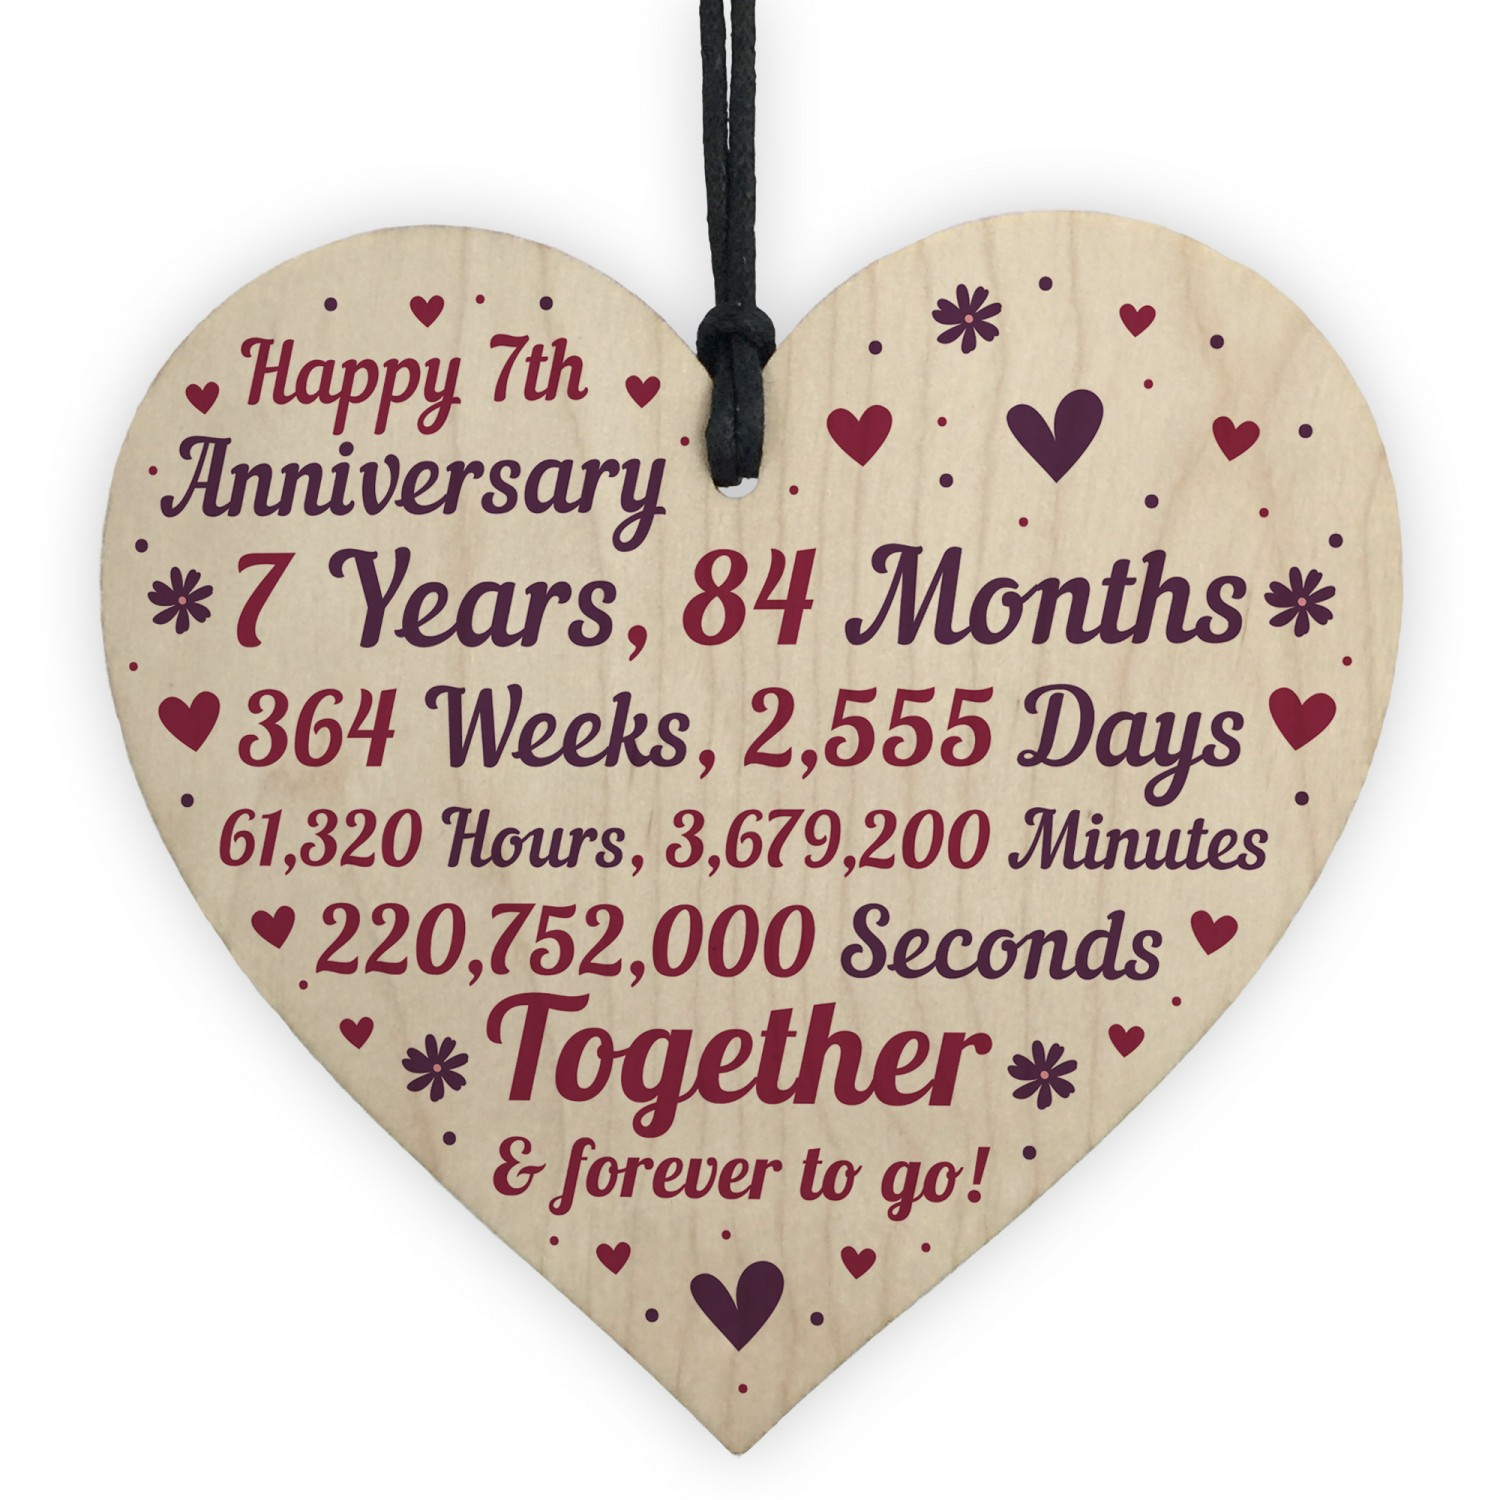 7th Wedding Anniversary.Anniversary Wooden Heart To Celebrate 7th Wedding Anniversary